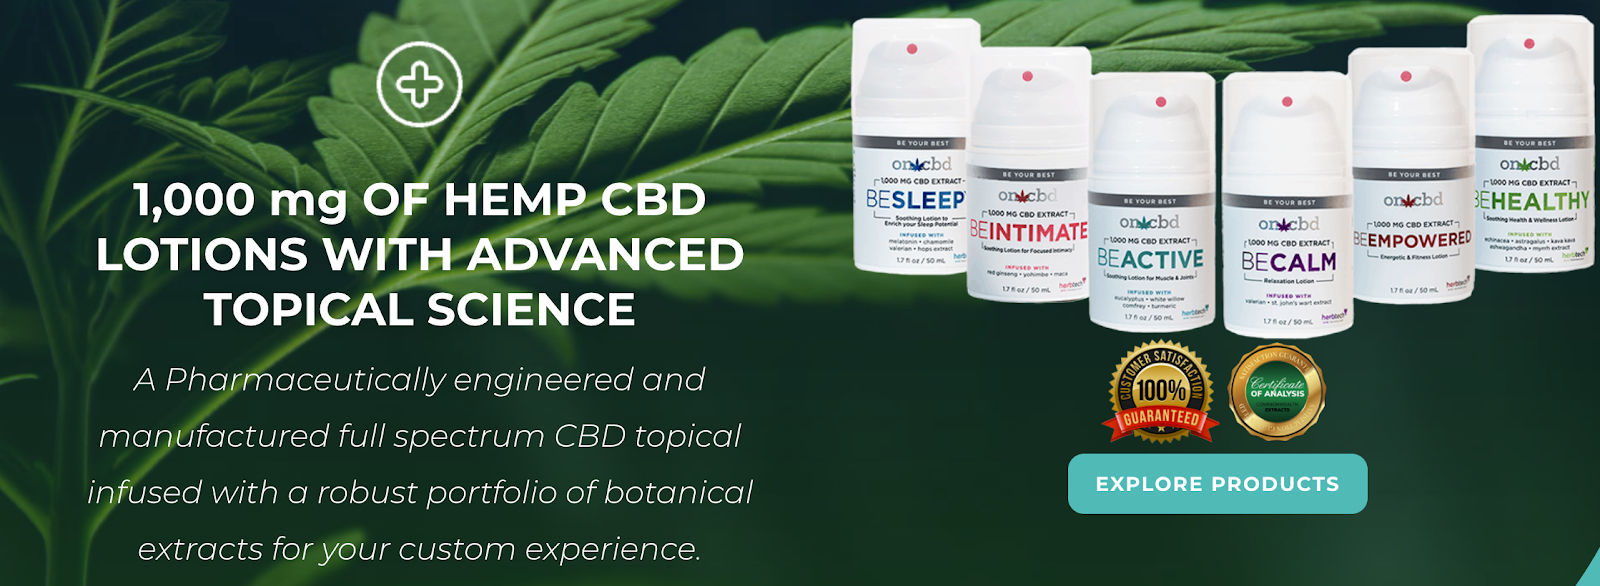 HerbTech Pharmaceuticals | Influencer Collabs to Promote CBD Lotions